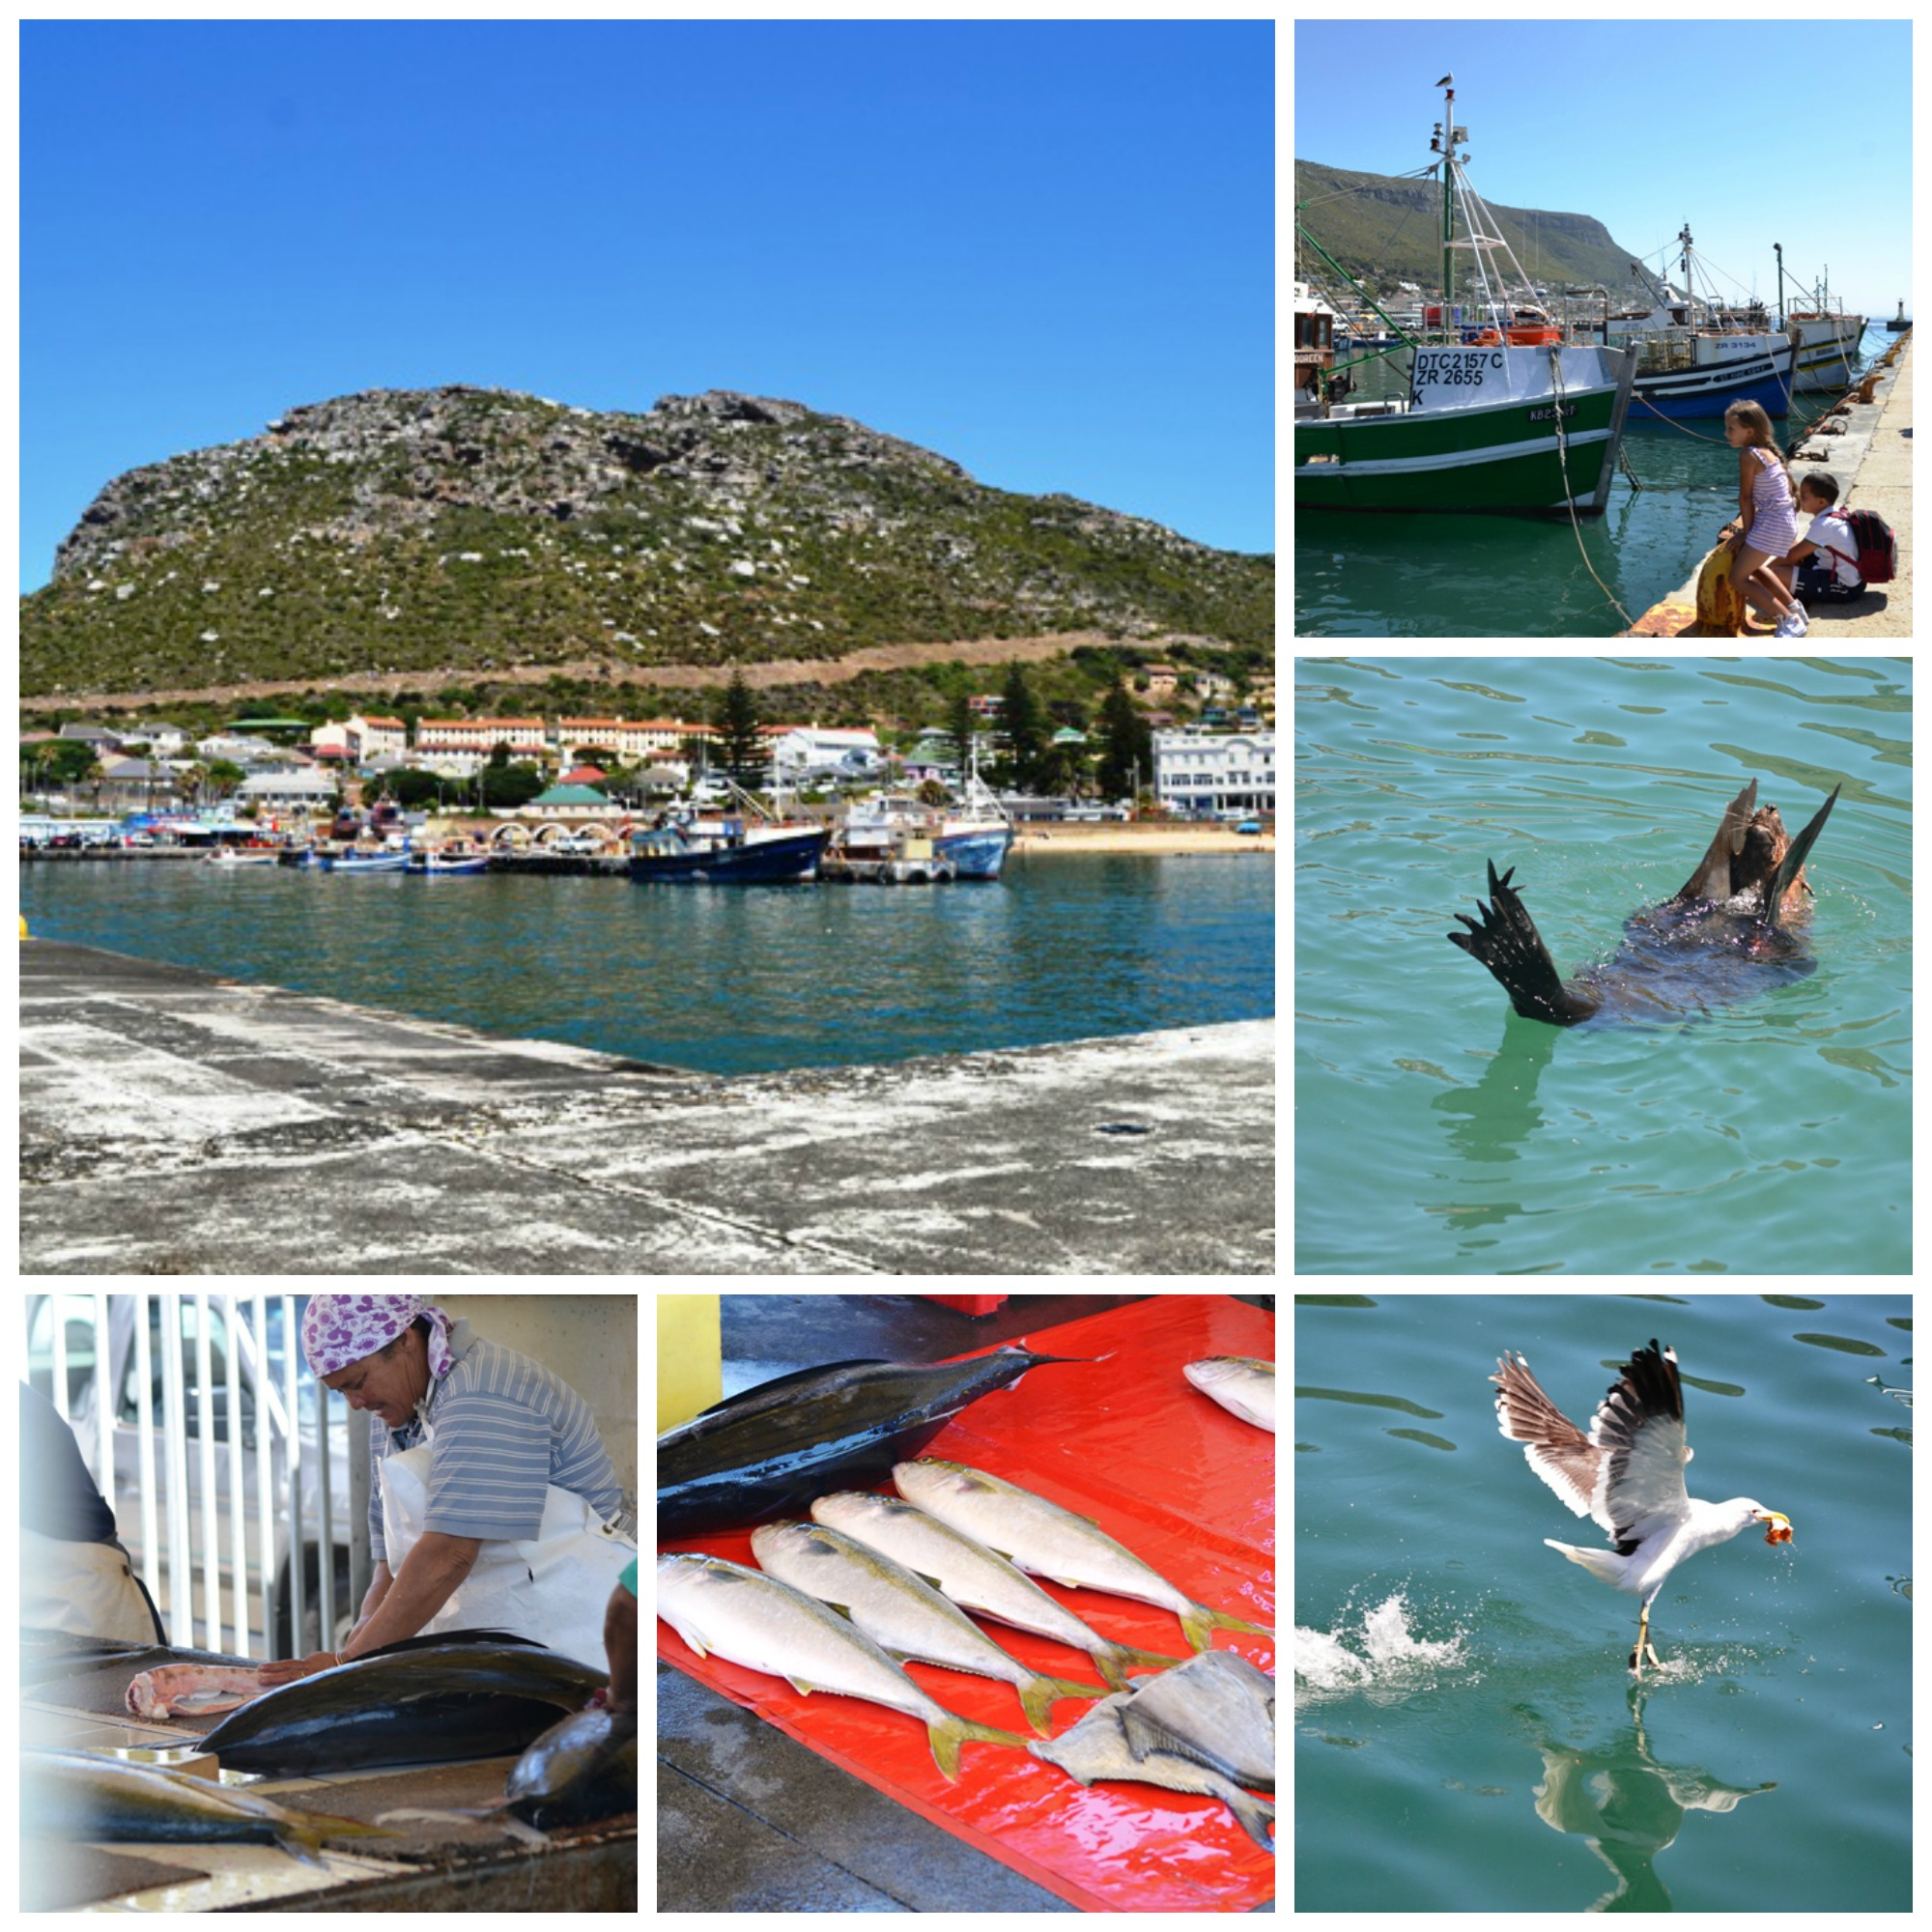 road trip, cape peninsula, cape town, explore, kid friendly, trips, kalk bay harbour, slangkop lighthouse, imhoff farm, hout bay, noordhoek, cape point ostrich farm, cape point, south africa, tami magnin, anton magnin